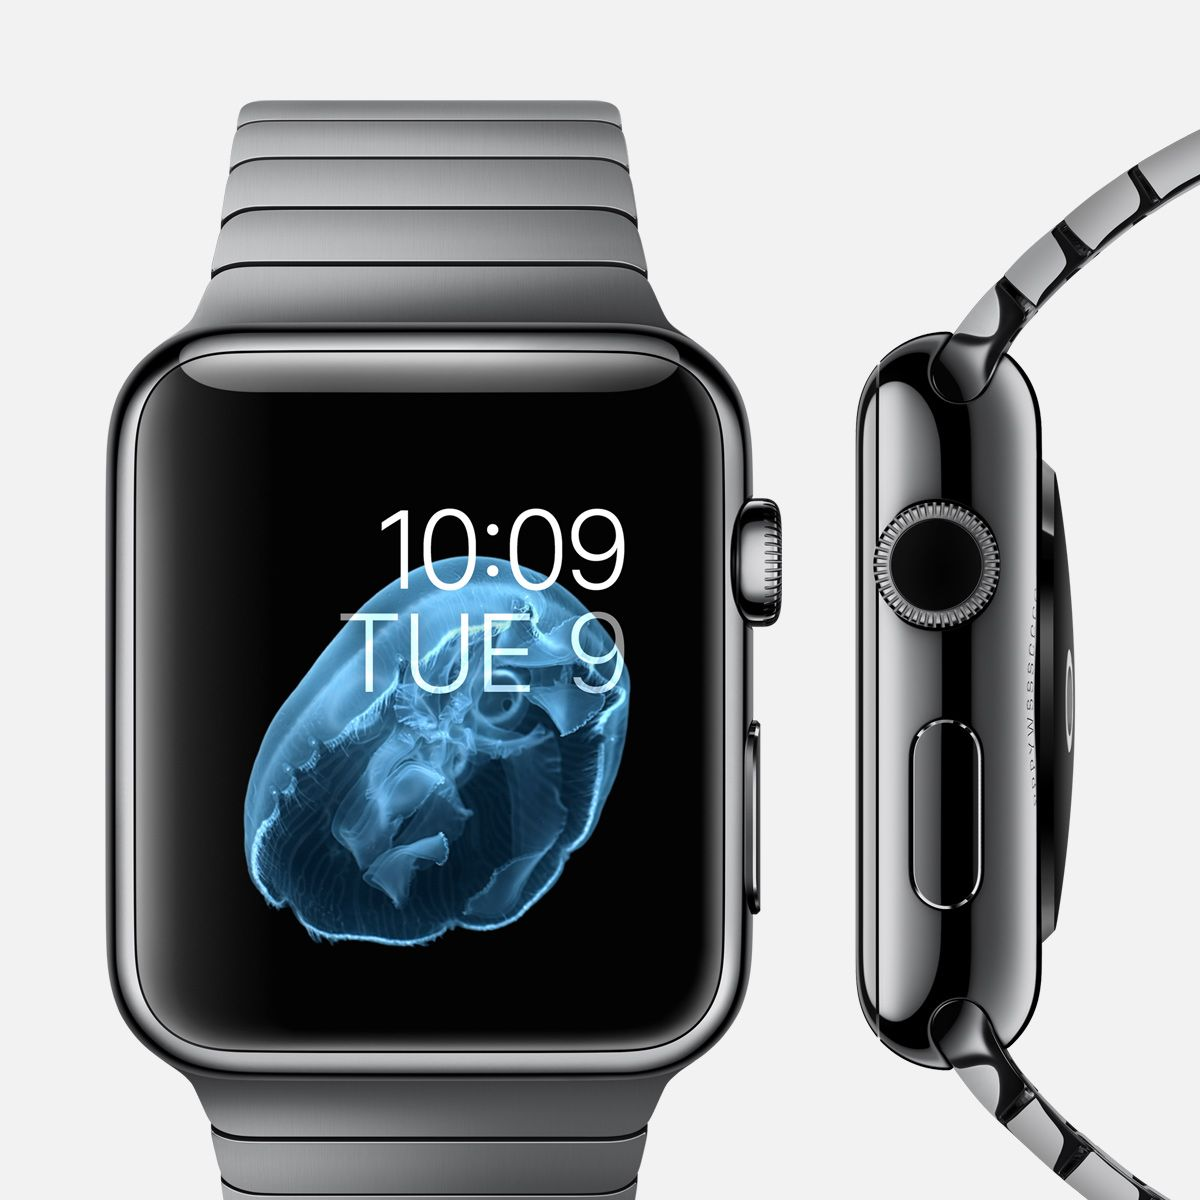 Apple Apple Watch While every other tech company